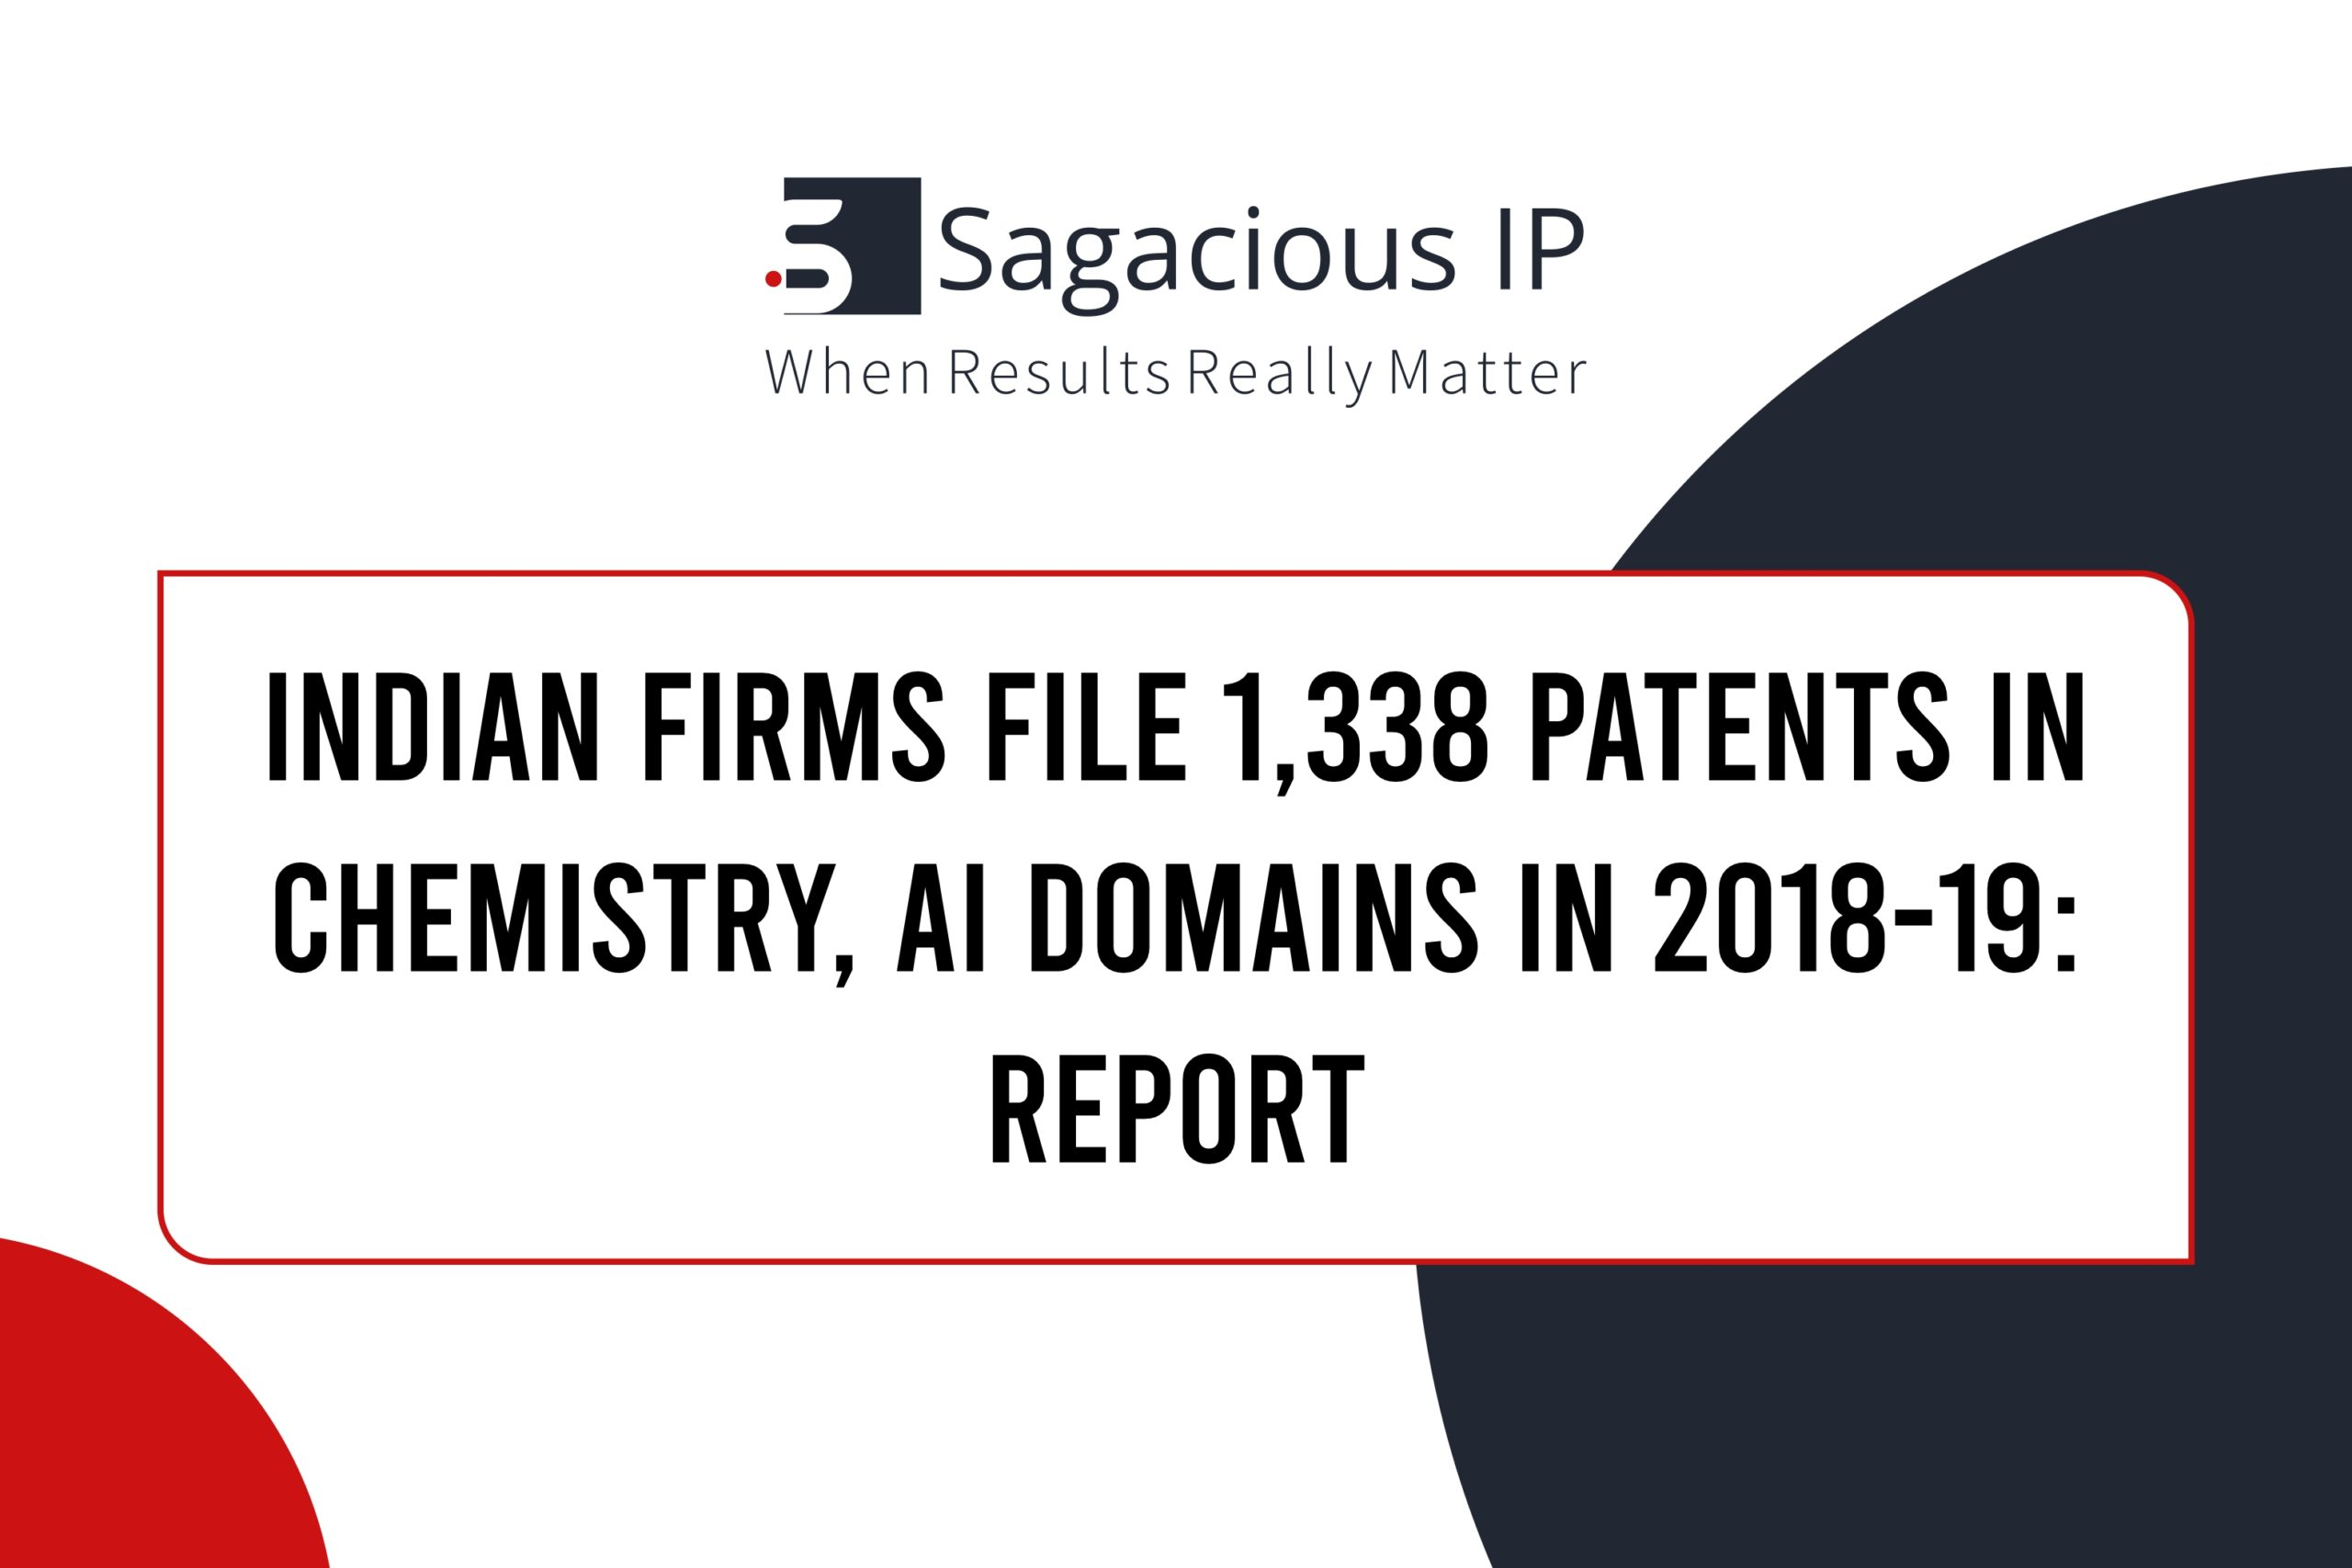 Indian firms file 1,338 patents in